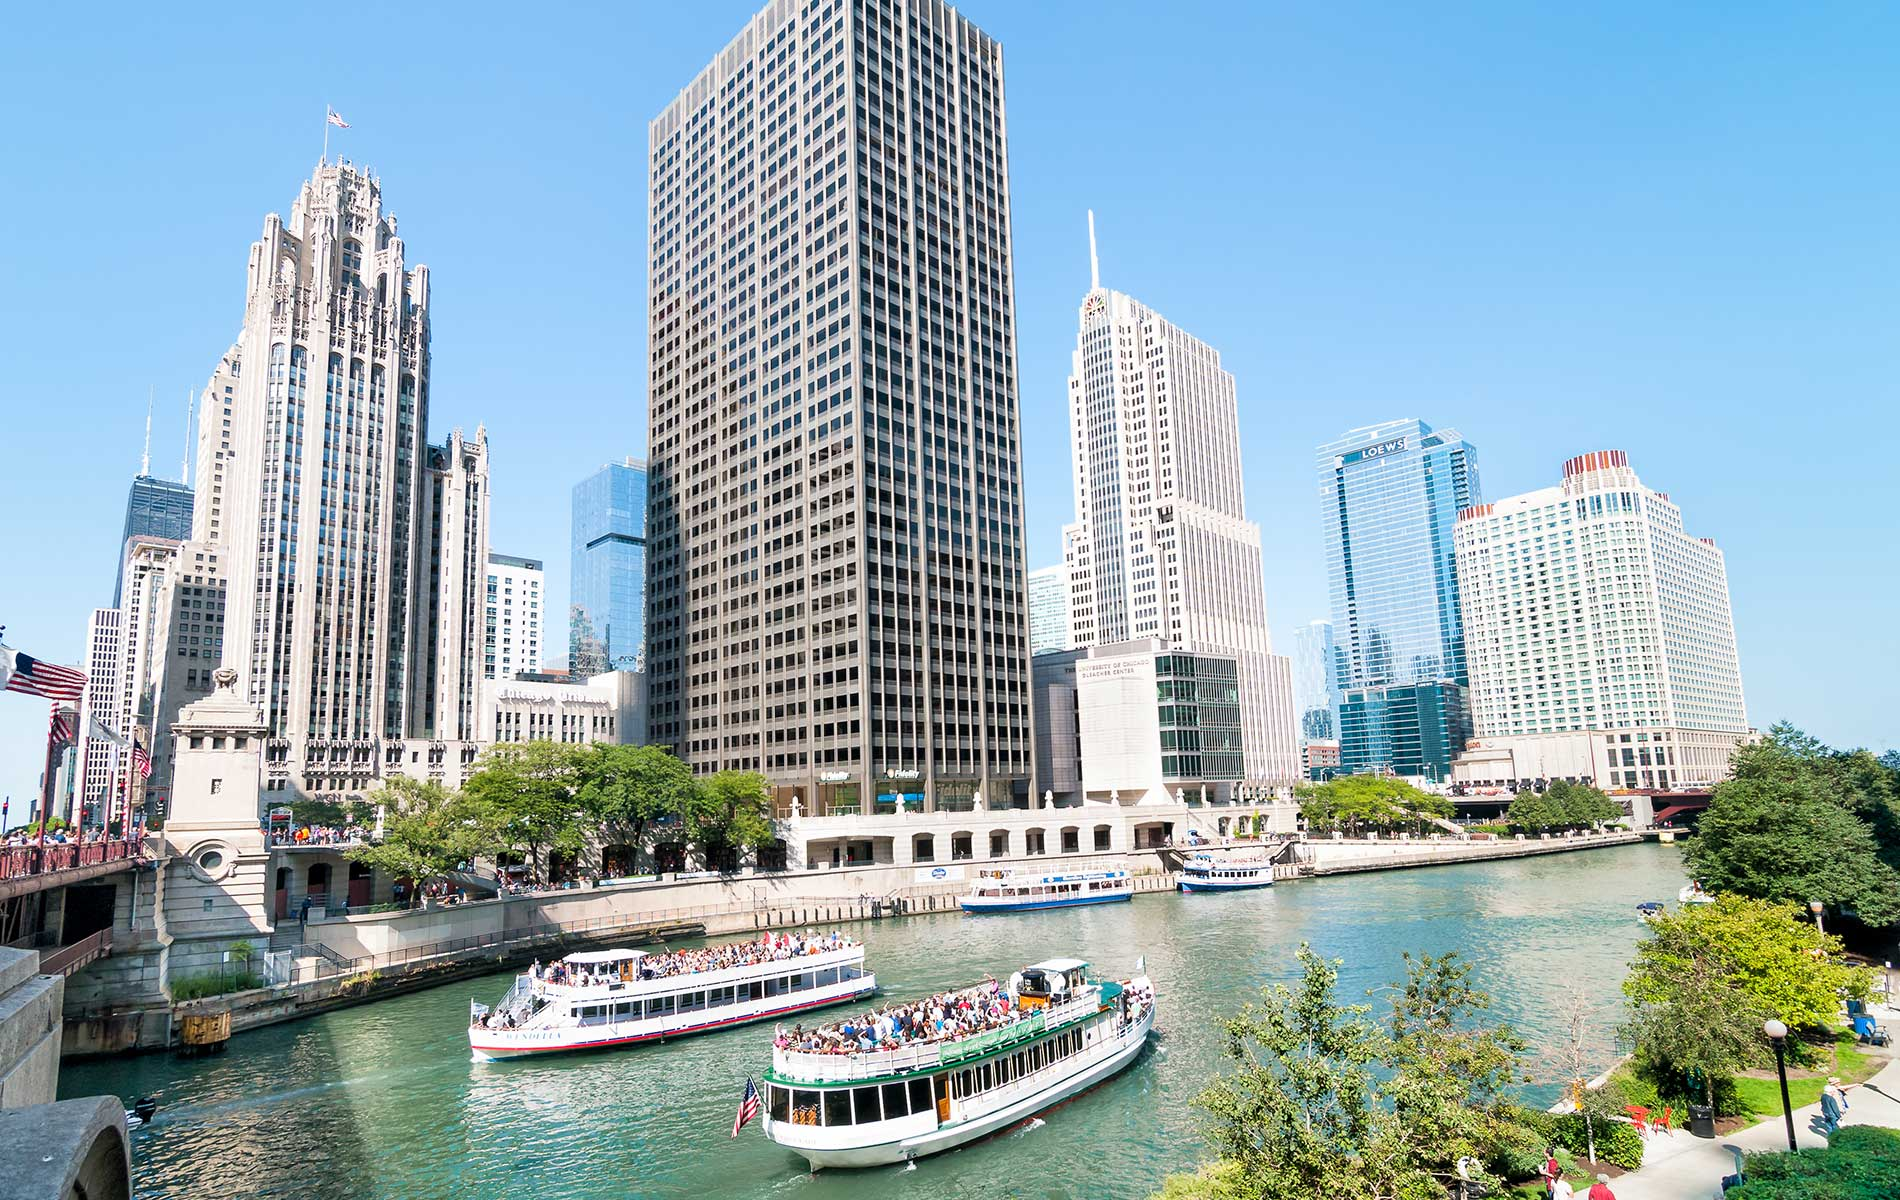 The Chicago Architecture Foundation River Cruise is a staple for visitors who wish to learn about the city's unique architectural history.